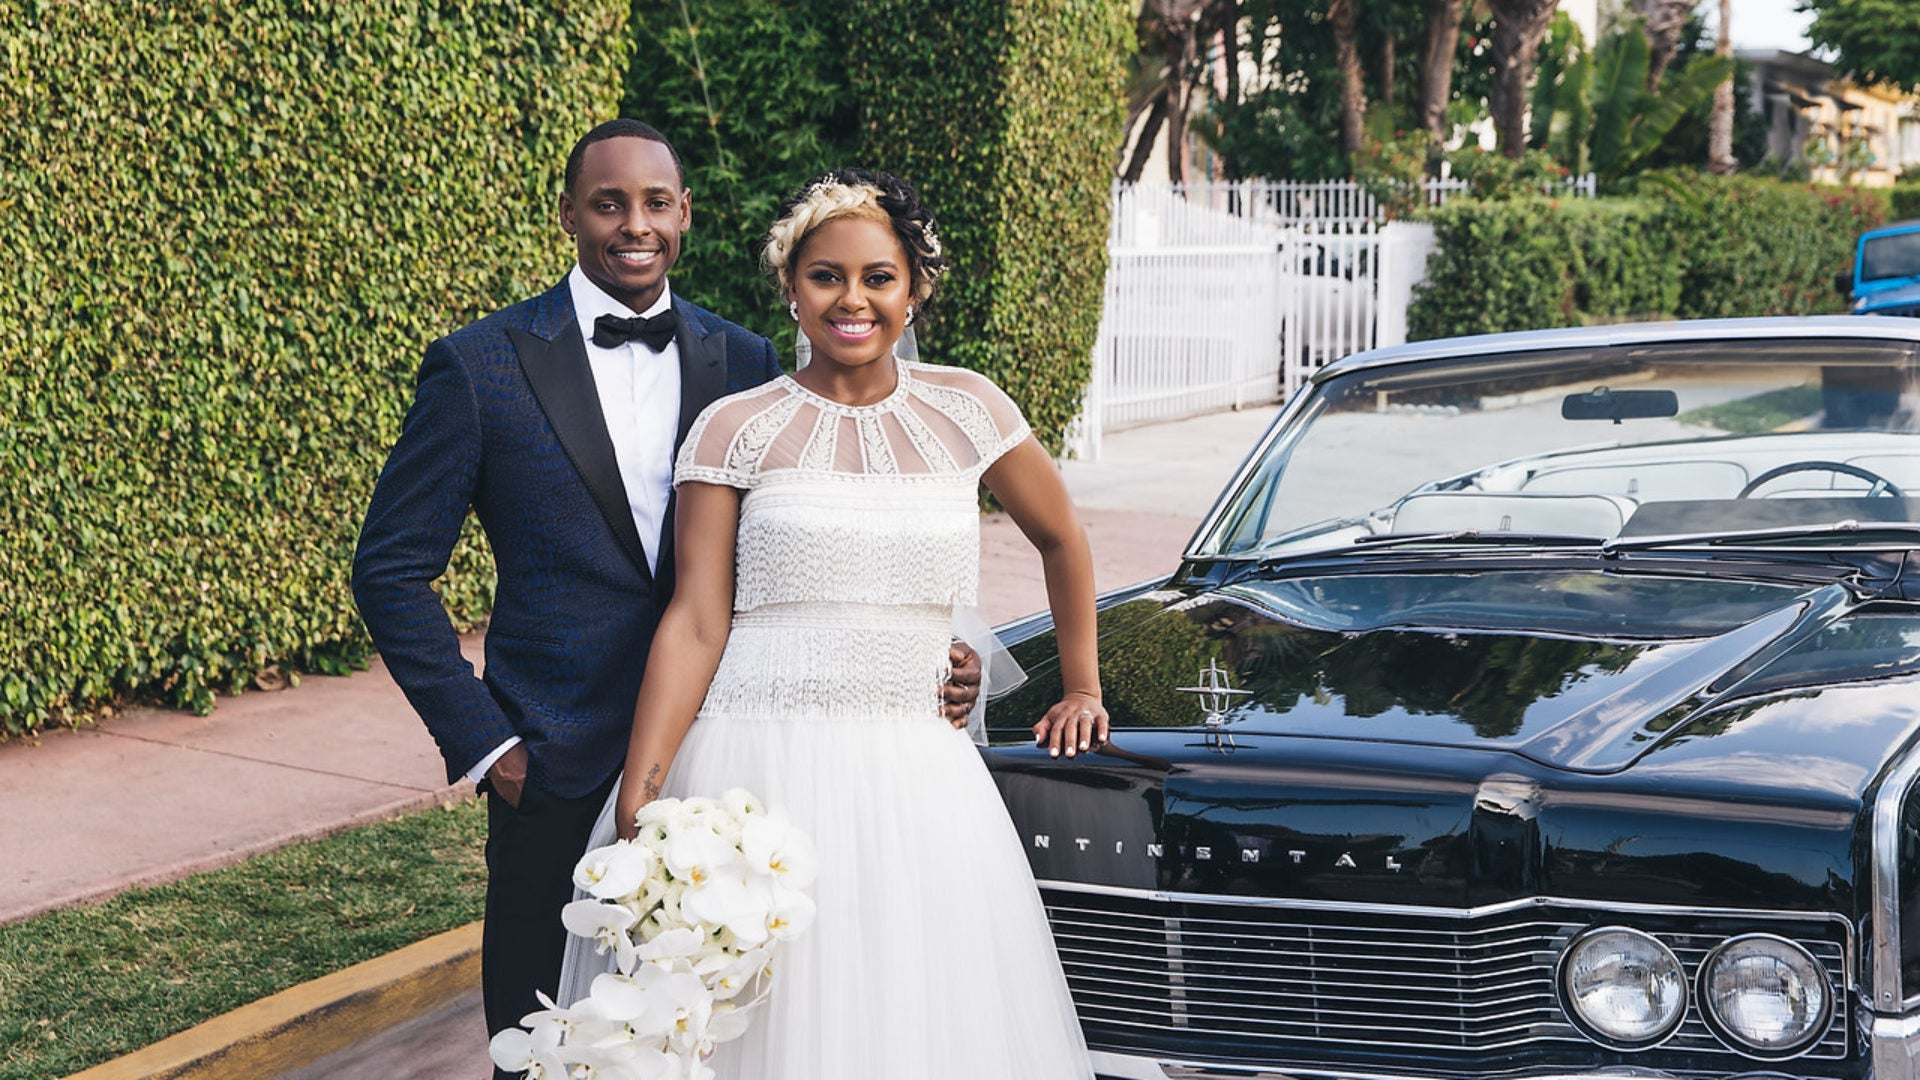 Bridal Bliss: Brooke and Layne's White-Hot Miami Wedding Was A Real Showstopper